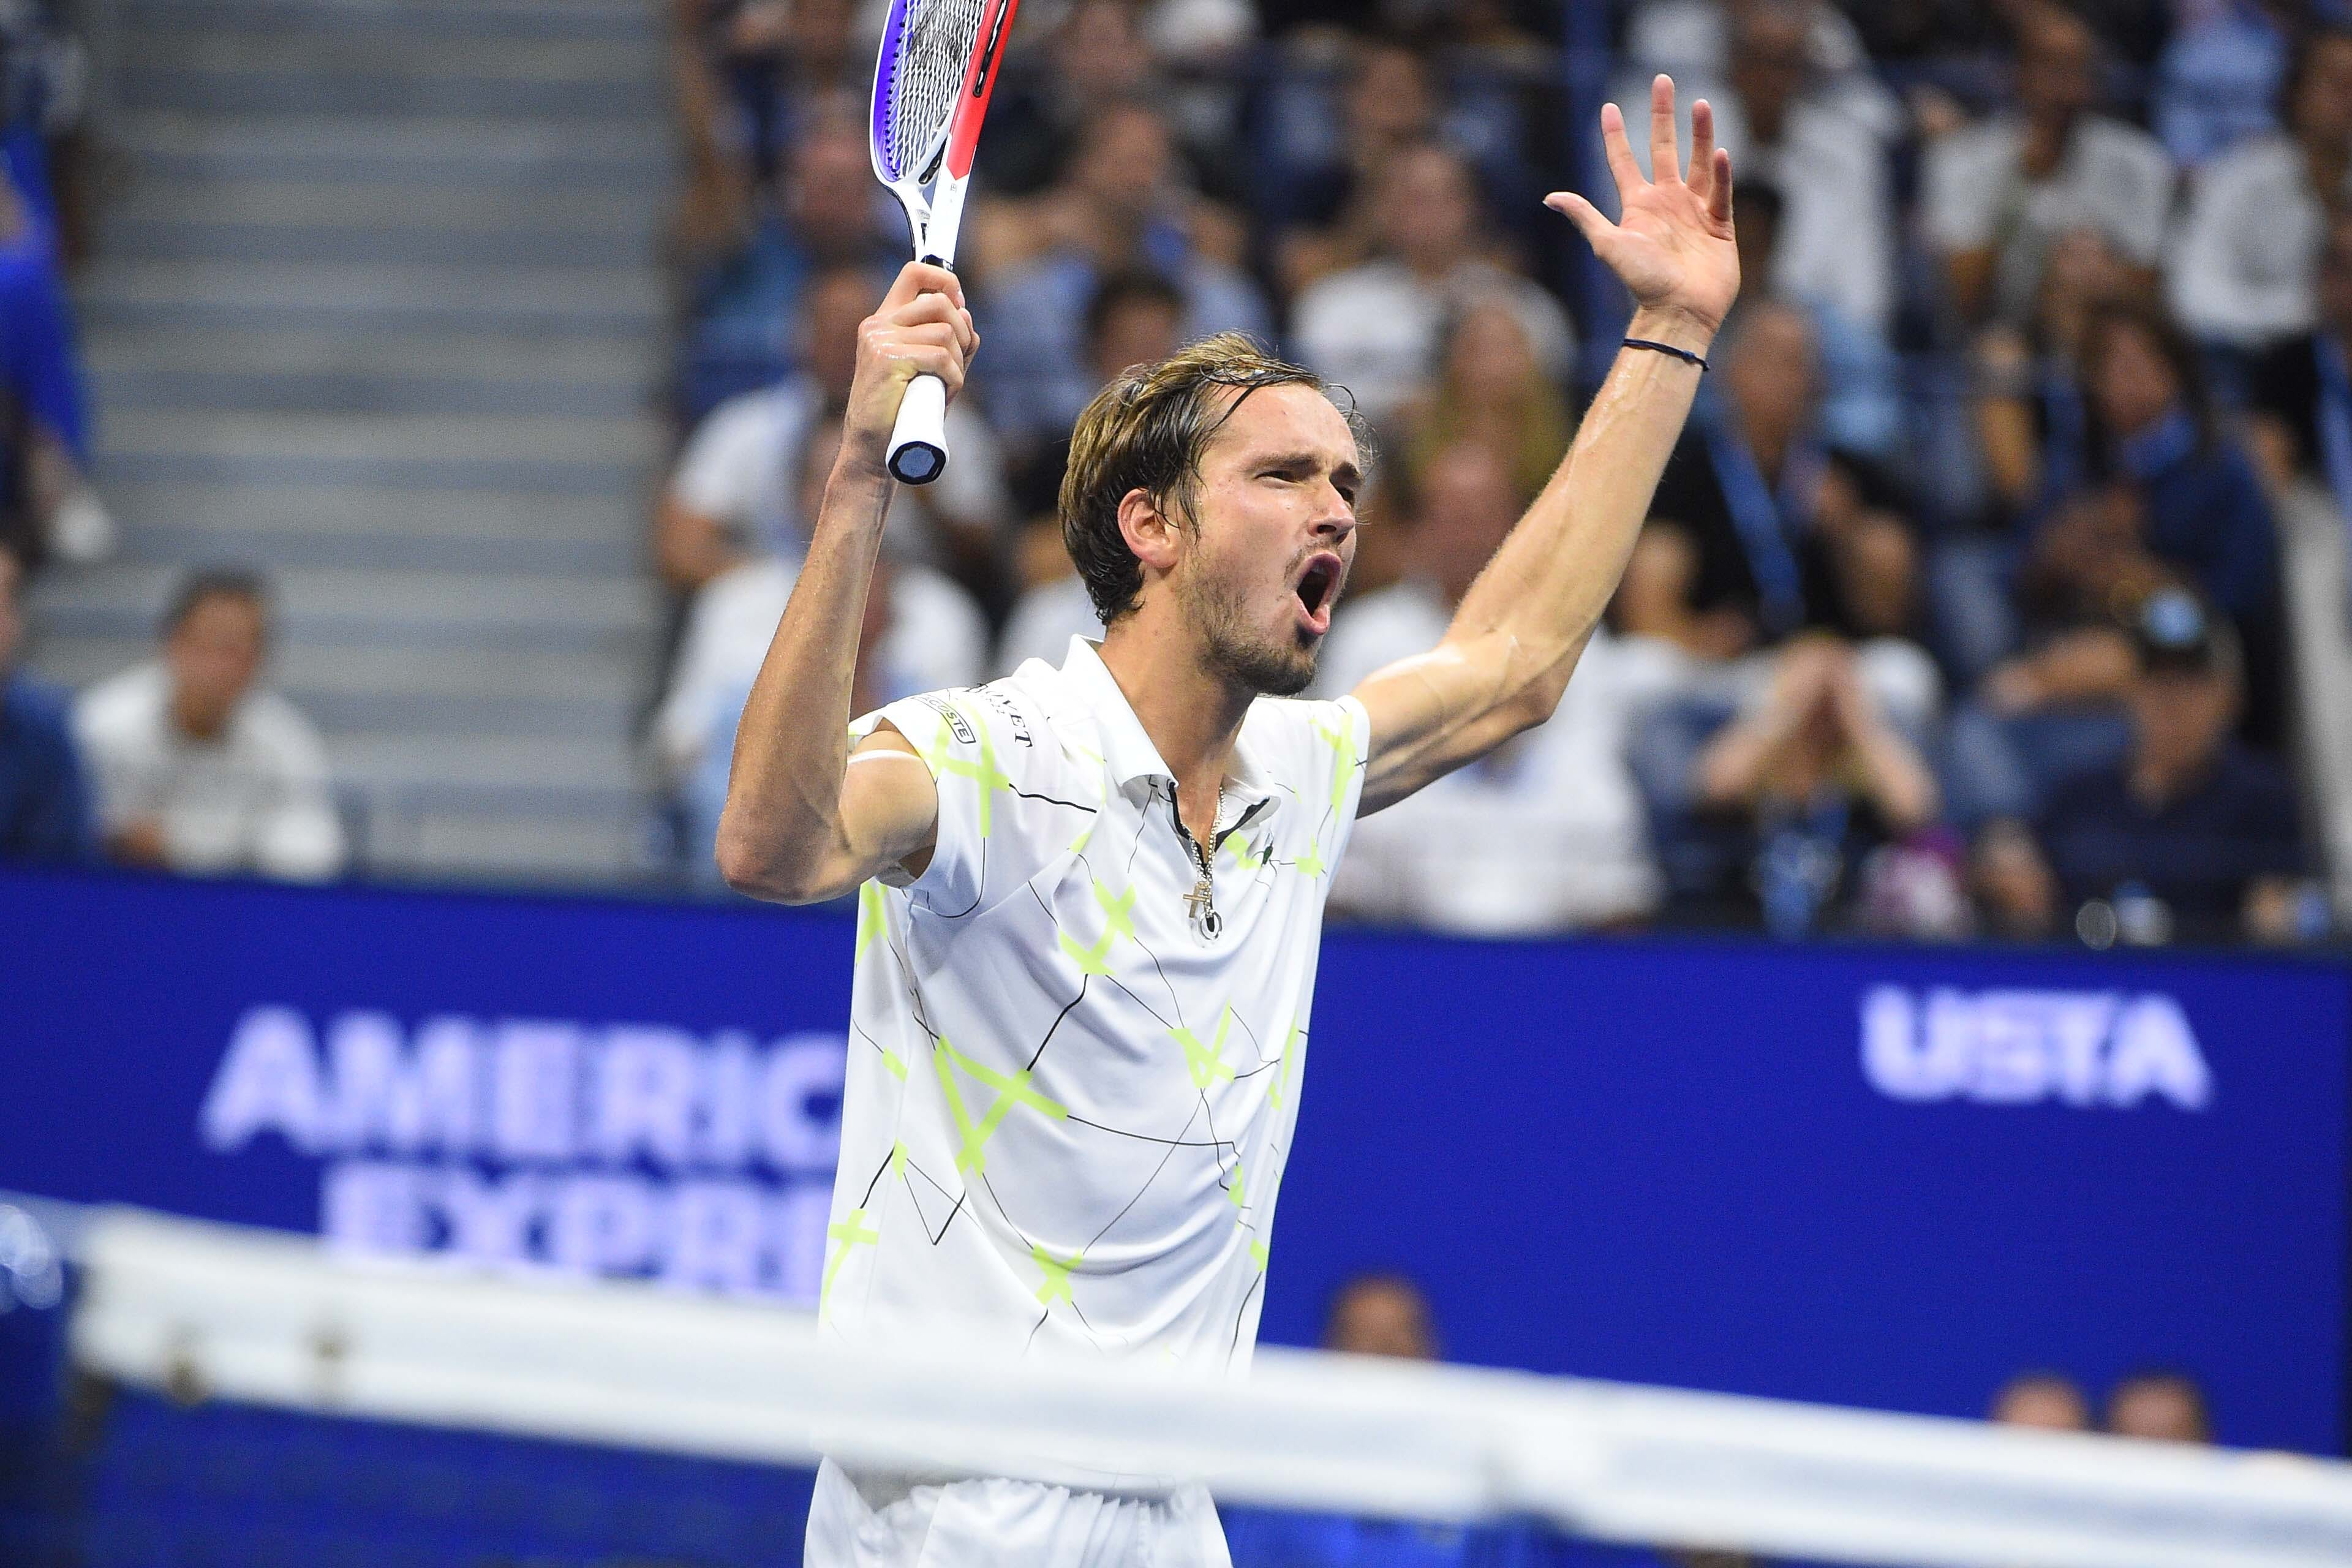 Daniil Medvedev encouraging himself during the 2019 US Open final